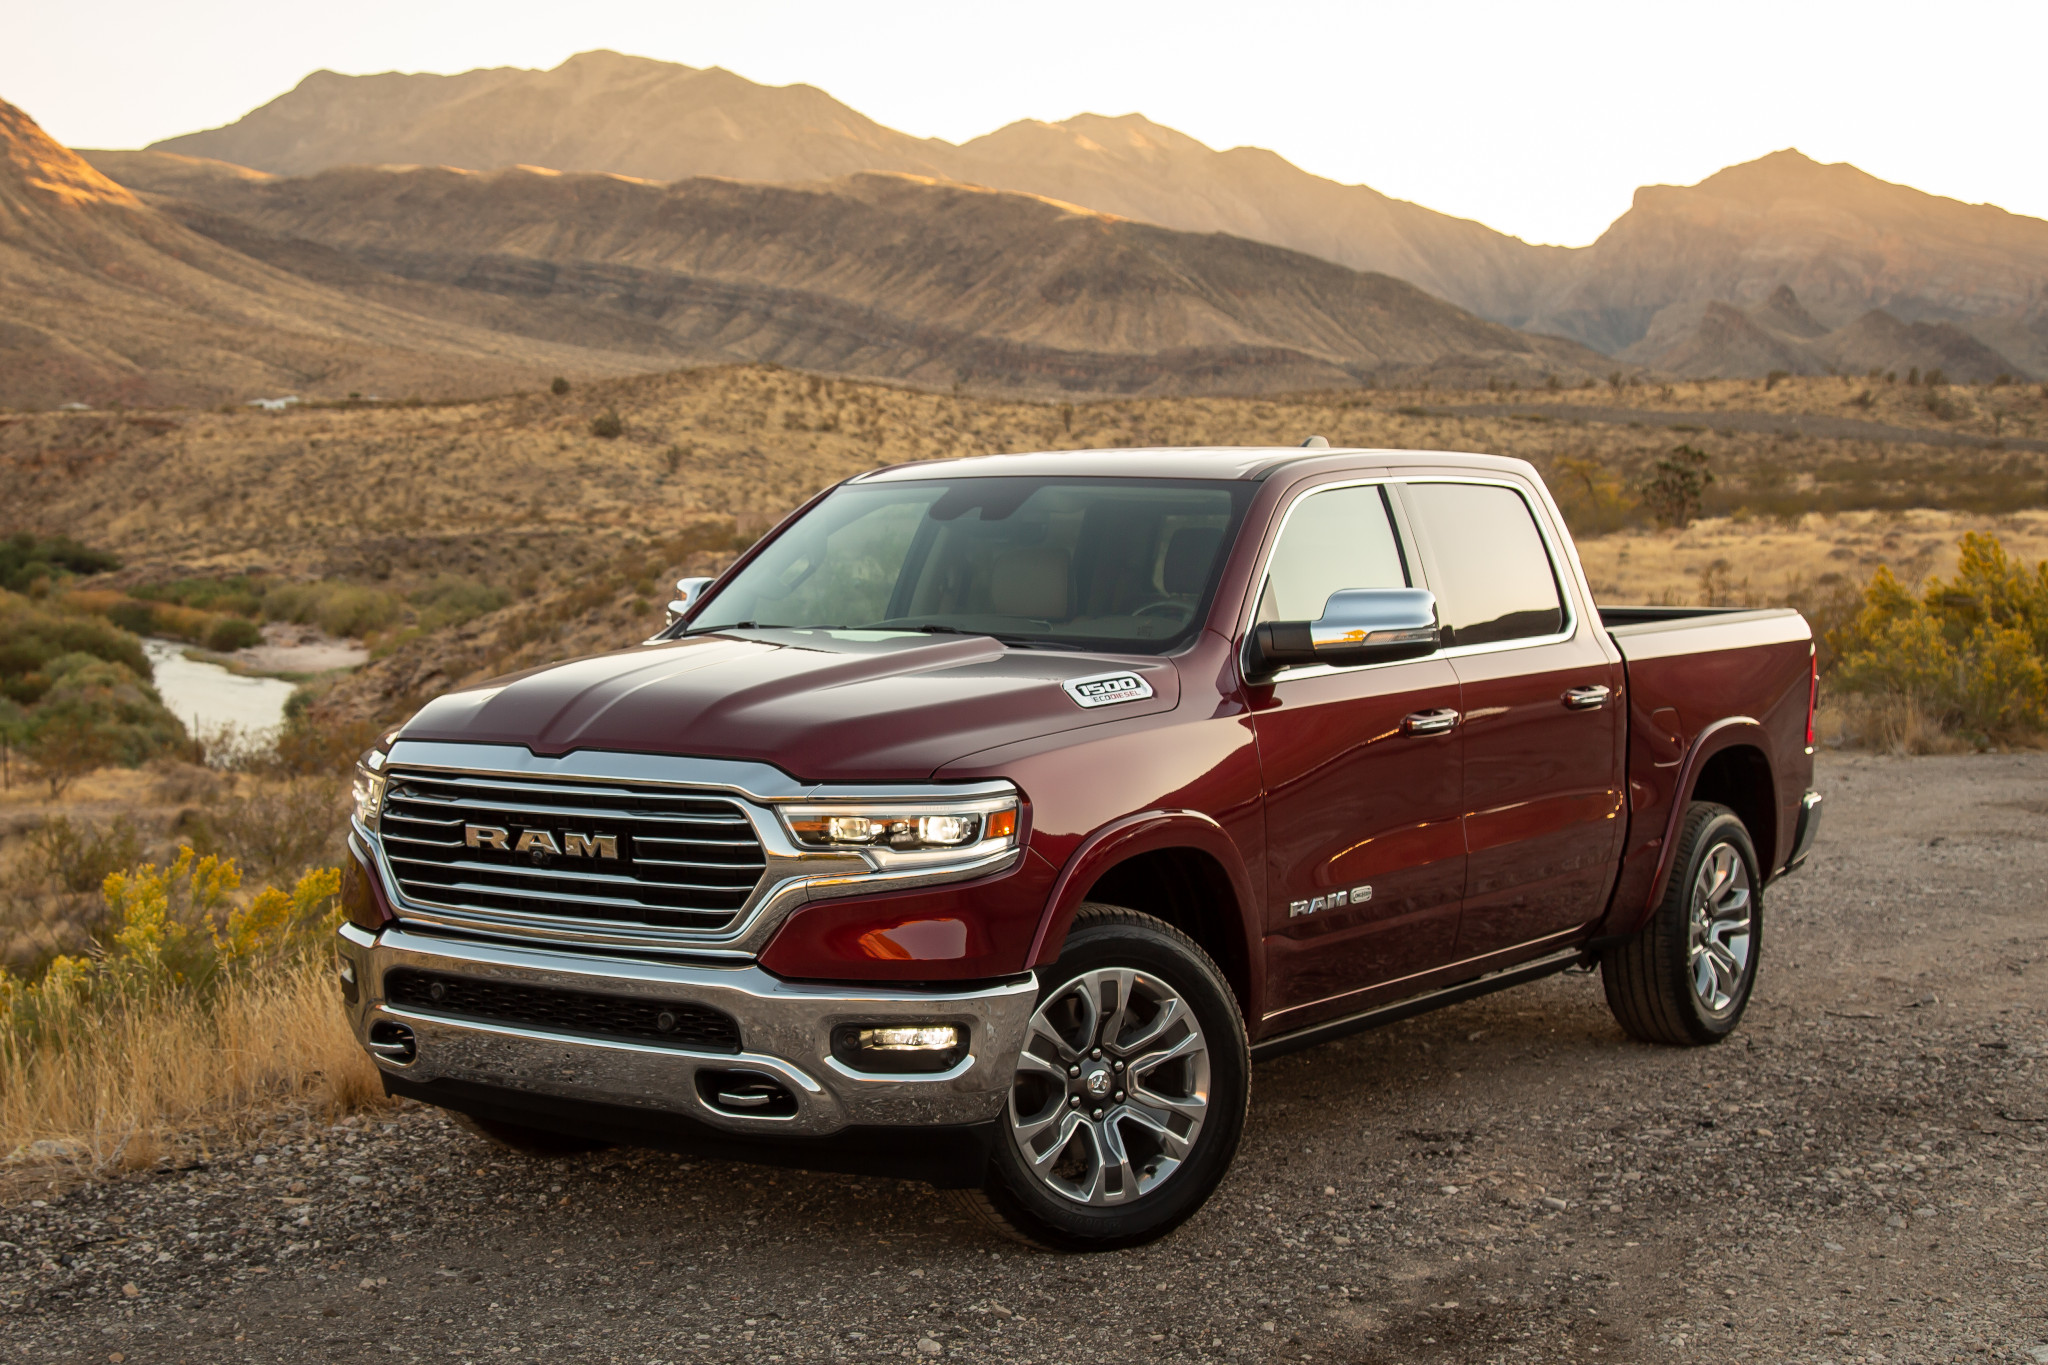 Ram 1500: Which Should You Buy, 2019 or 2020?